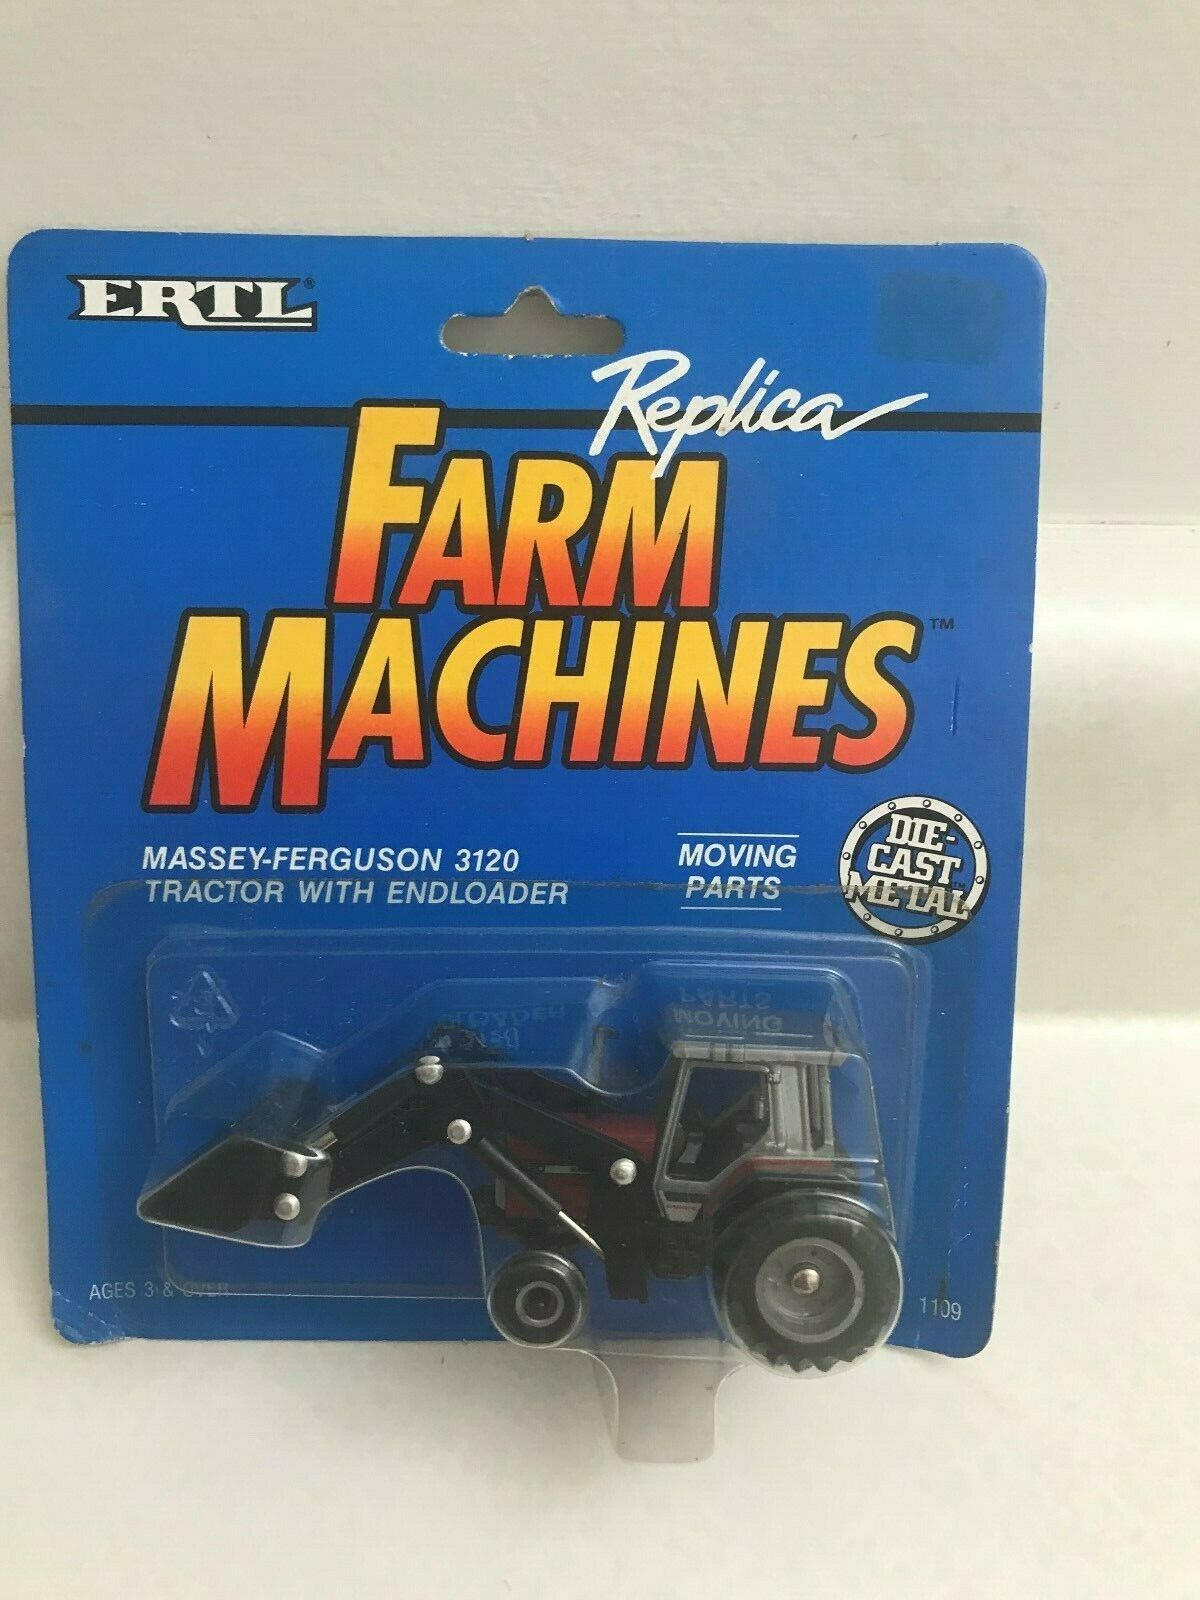 Massey-Ferguson 3120  tractor with endloader 1/64 scale #1109